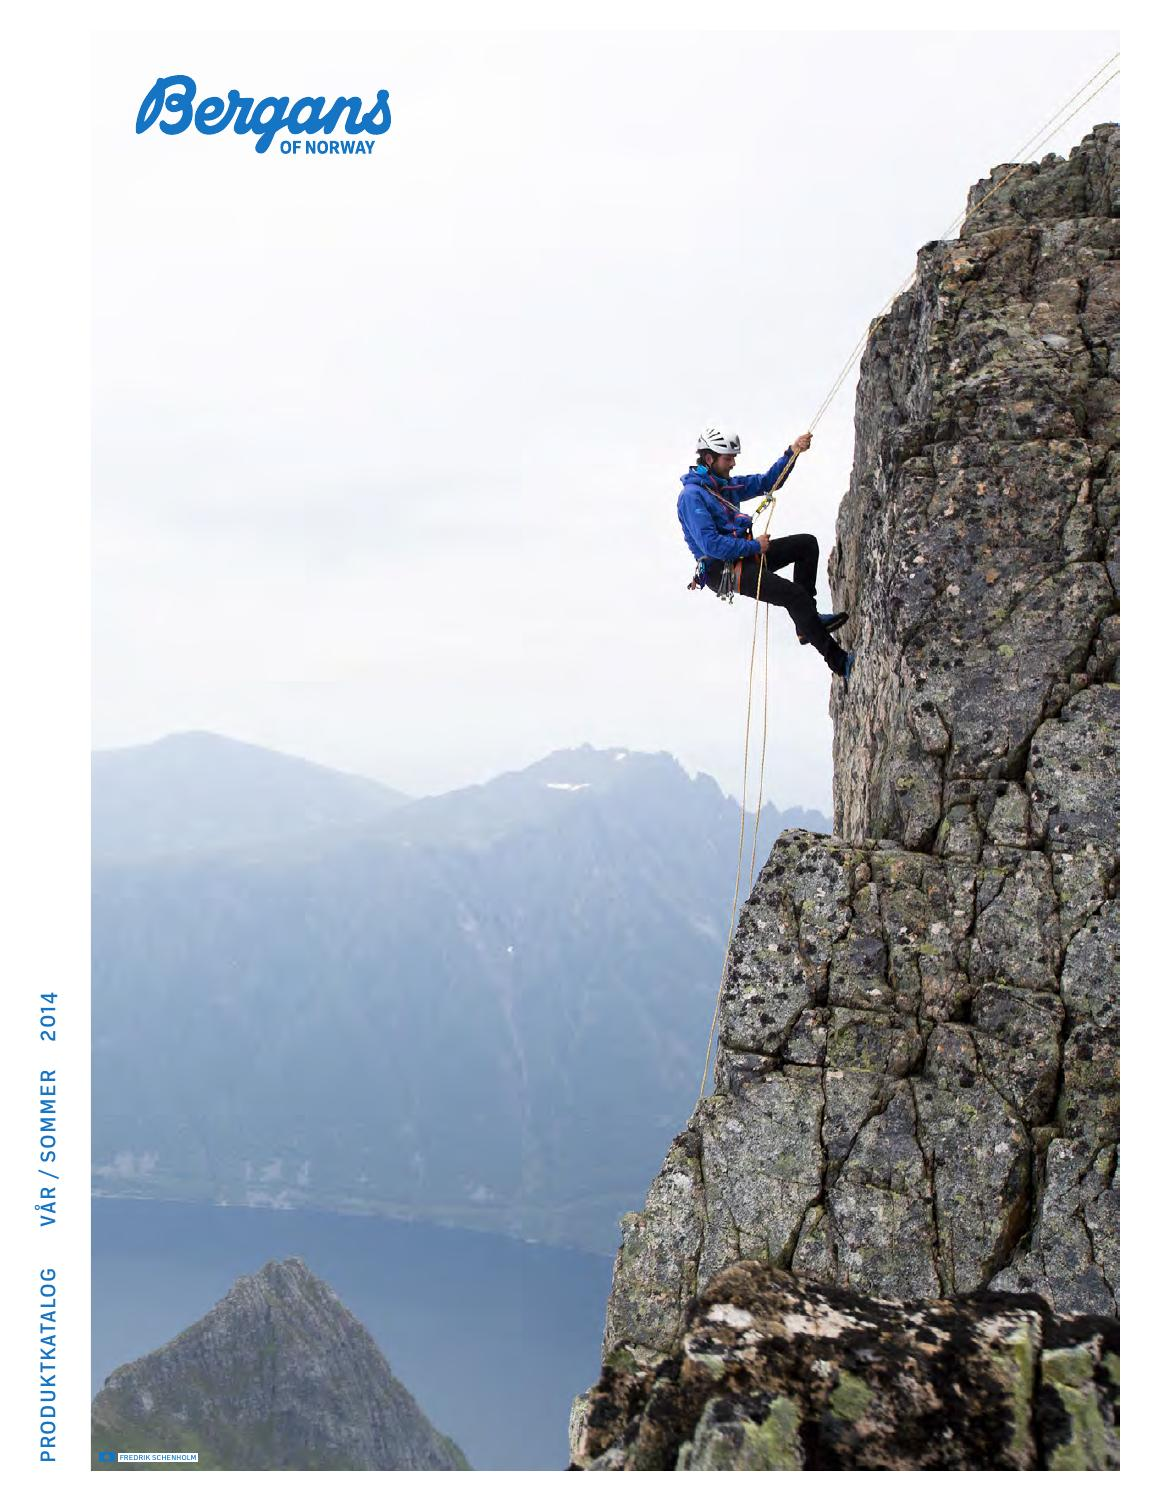 da7859c4 Bergans Produktkatalog Vår / Sommer 2014 by Bergans of Norway - issuu